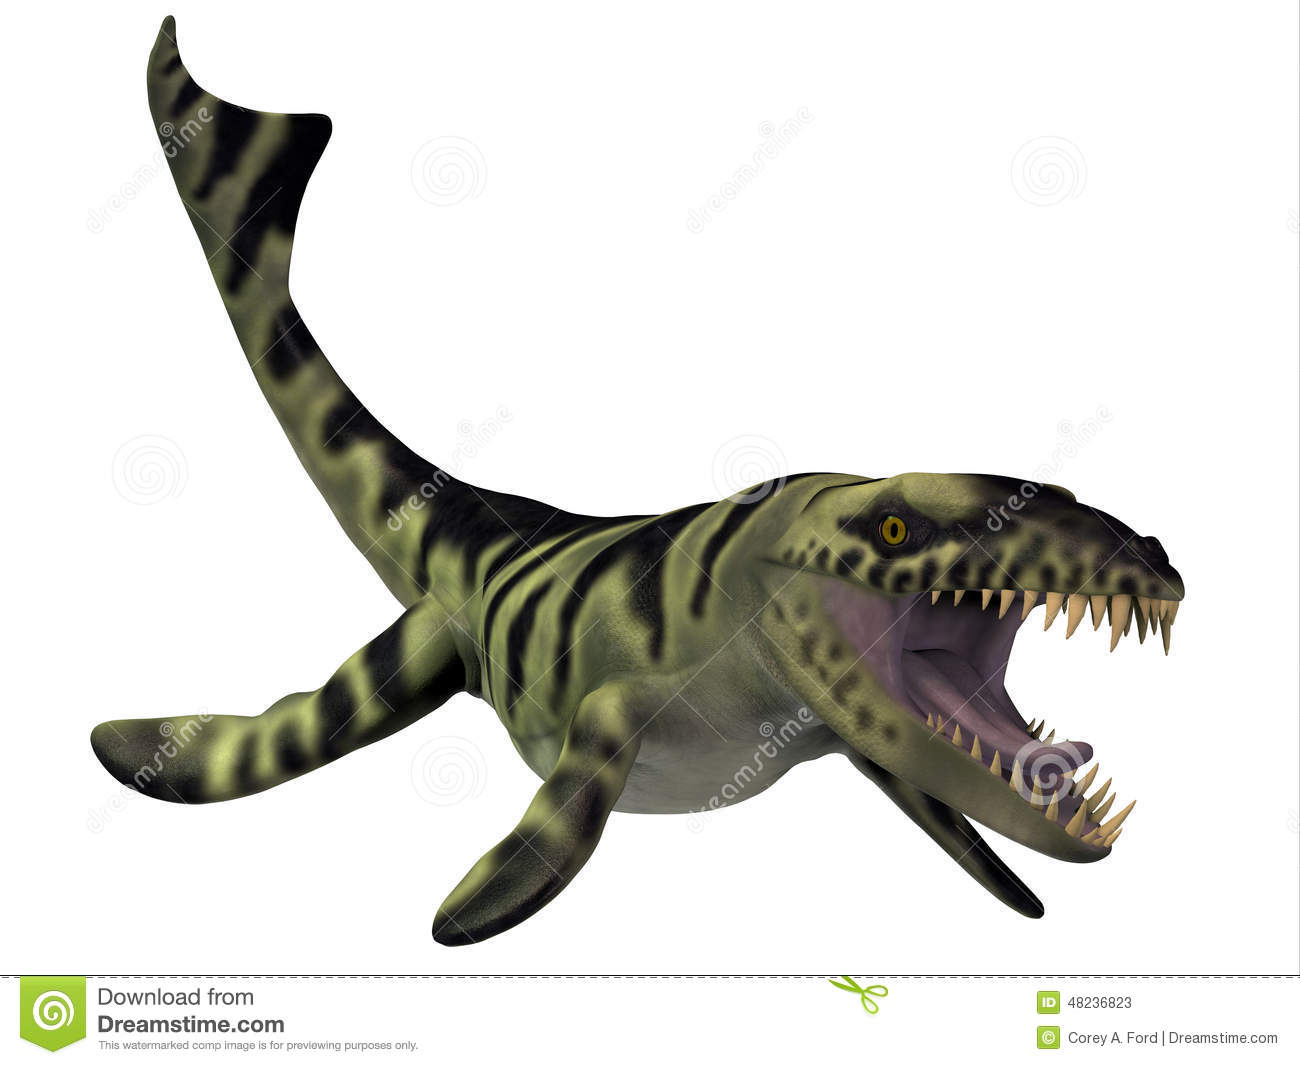 Dakosaurus dinosaur stock illustration illustration of - Dinosaure marin carnivore ...